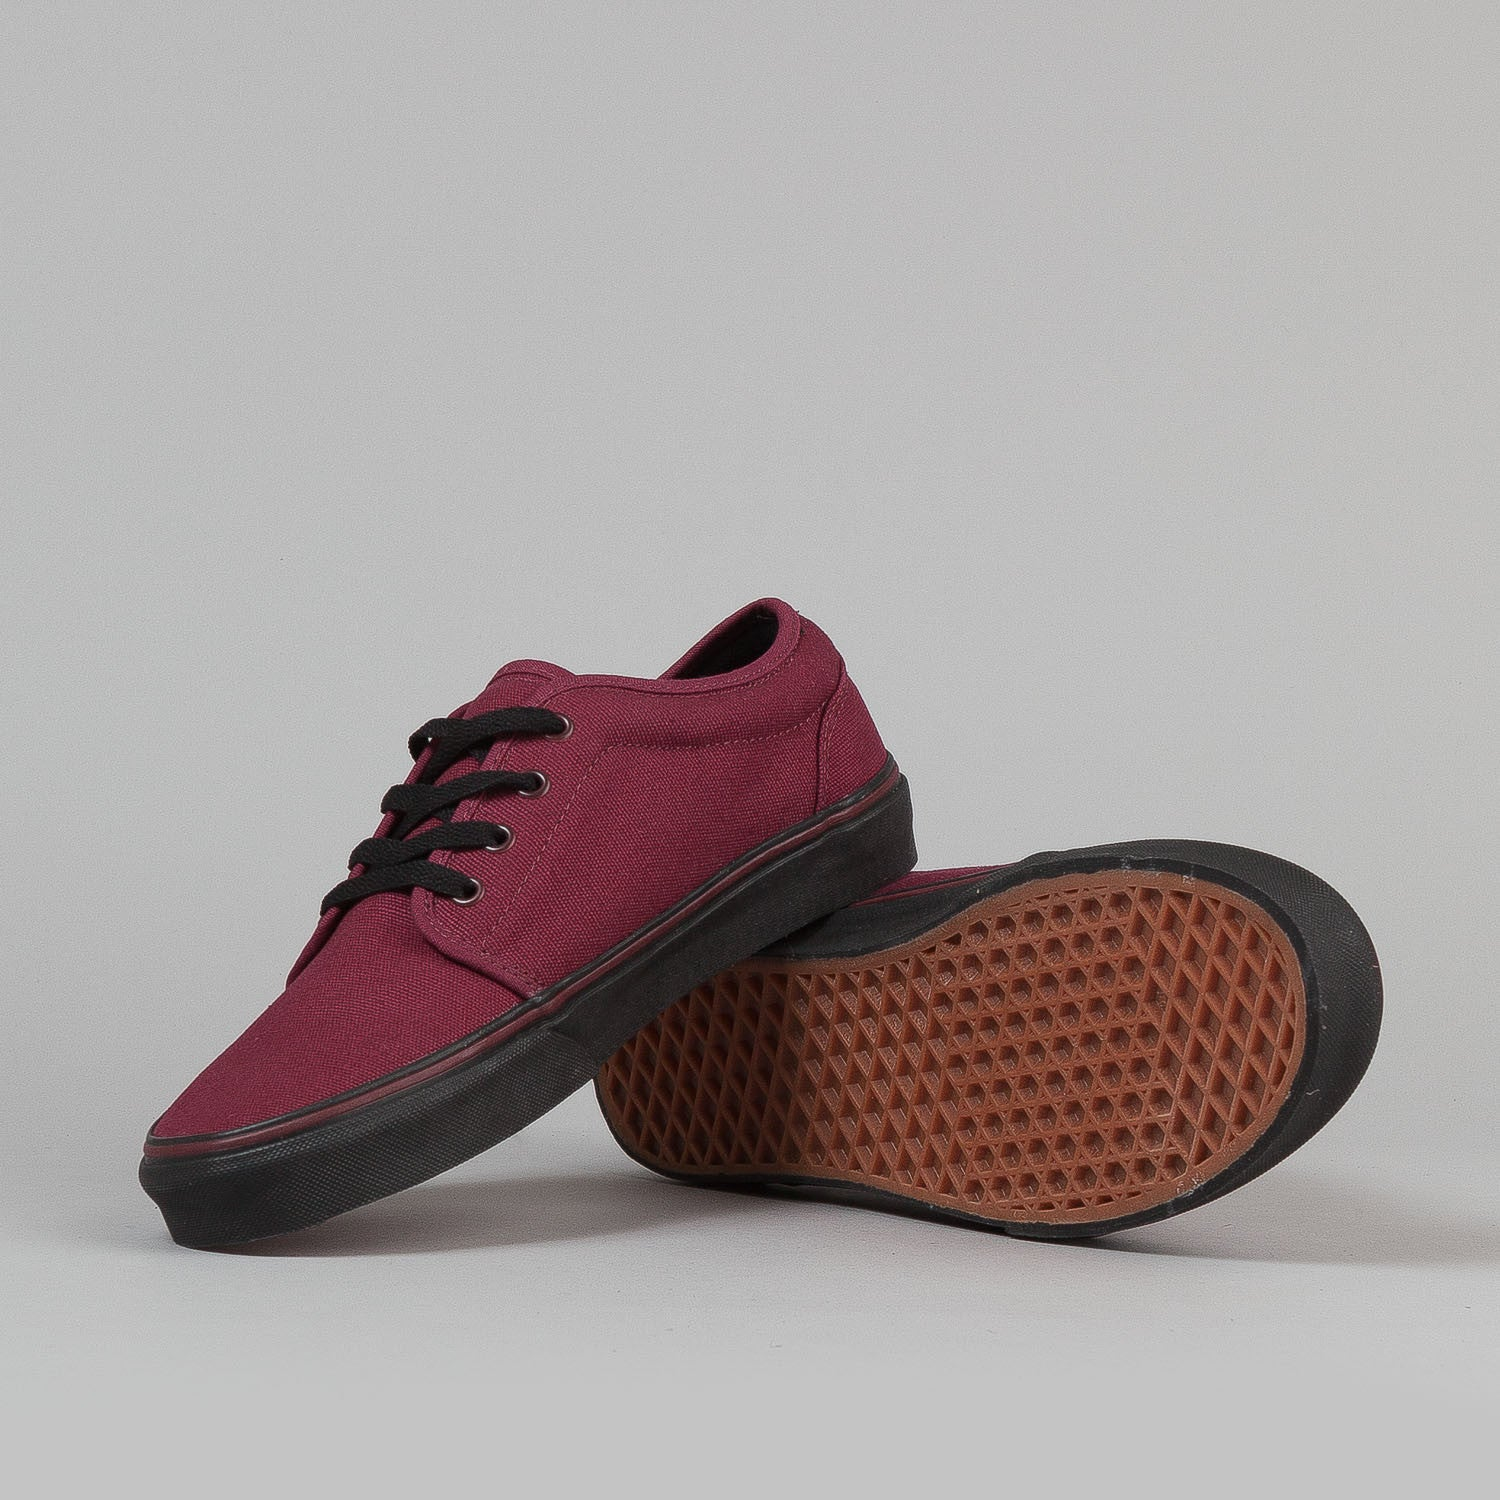 Vans 106 Vulc Shoes - (10oz Canvas) Zinfandel / Black